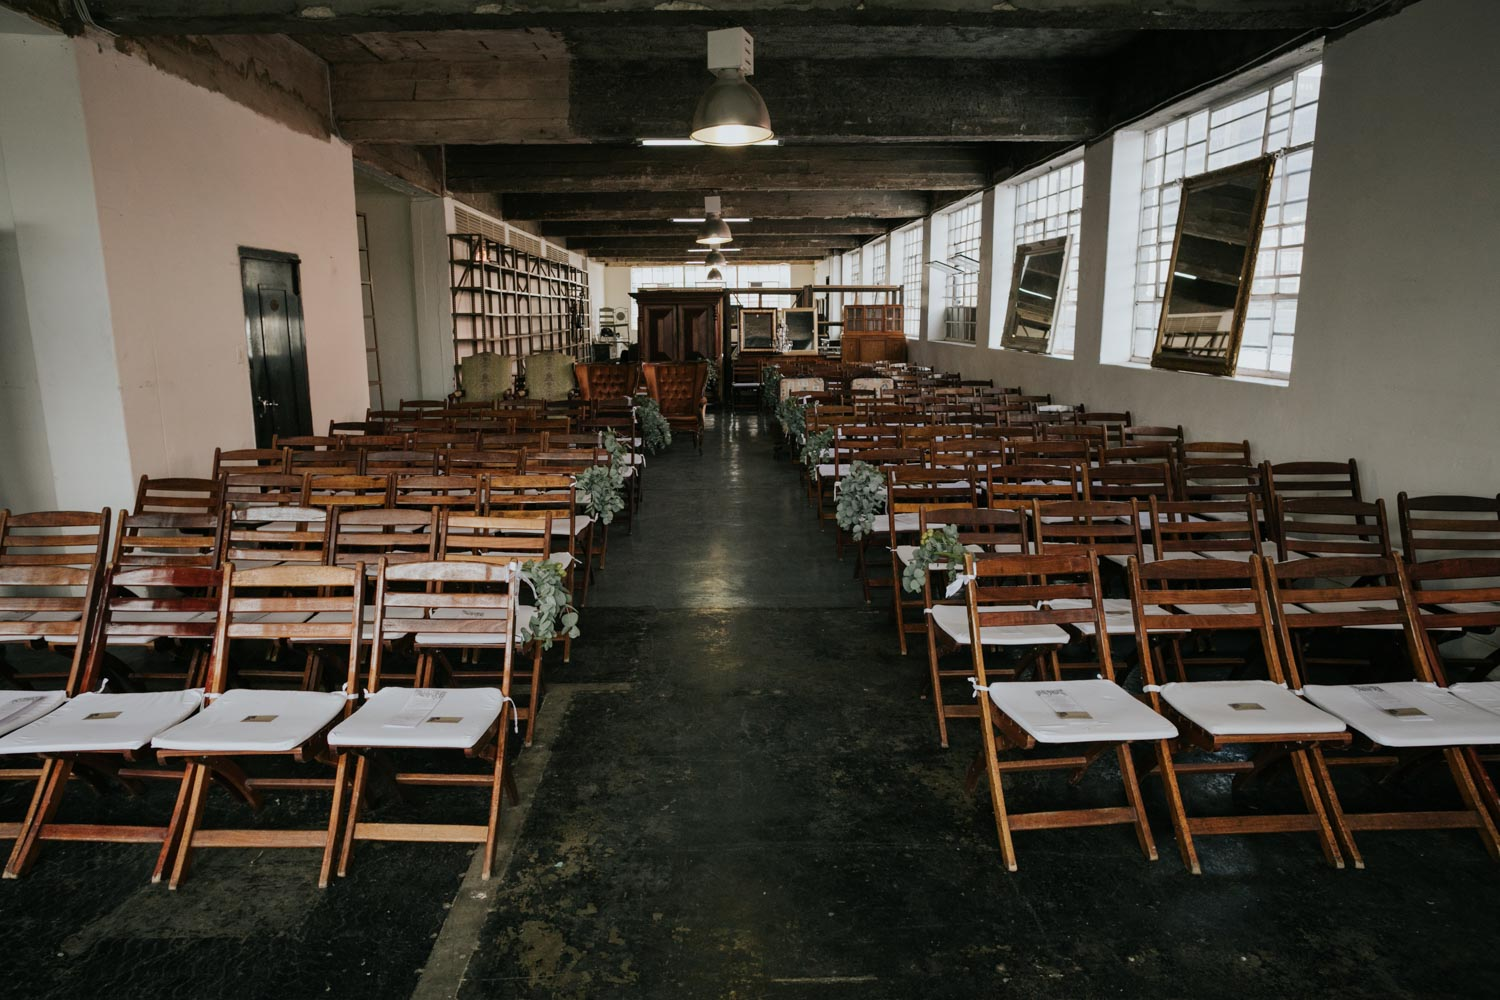 Wooden Wedding Chairs Set Out For Vancouver City Wedding In Old Warehouse